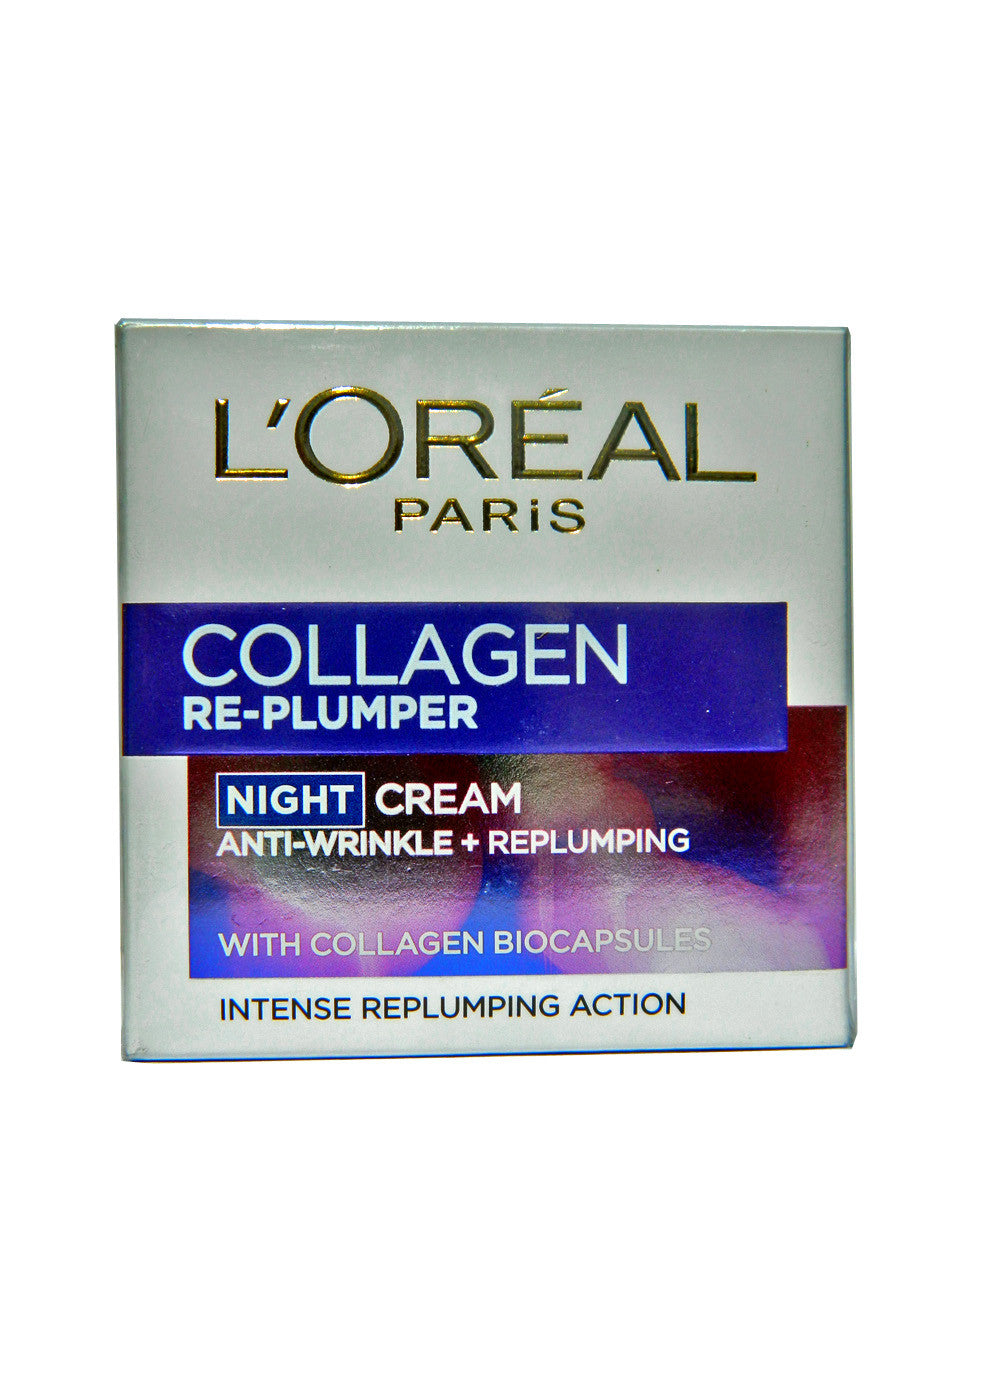 L'Oreal Collagen Anti-Wrinkle Re-Plumper Night Cream 50ml